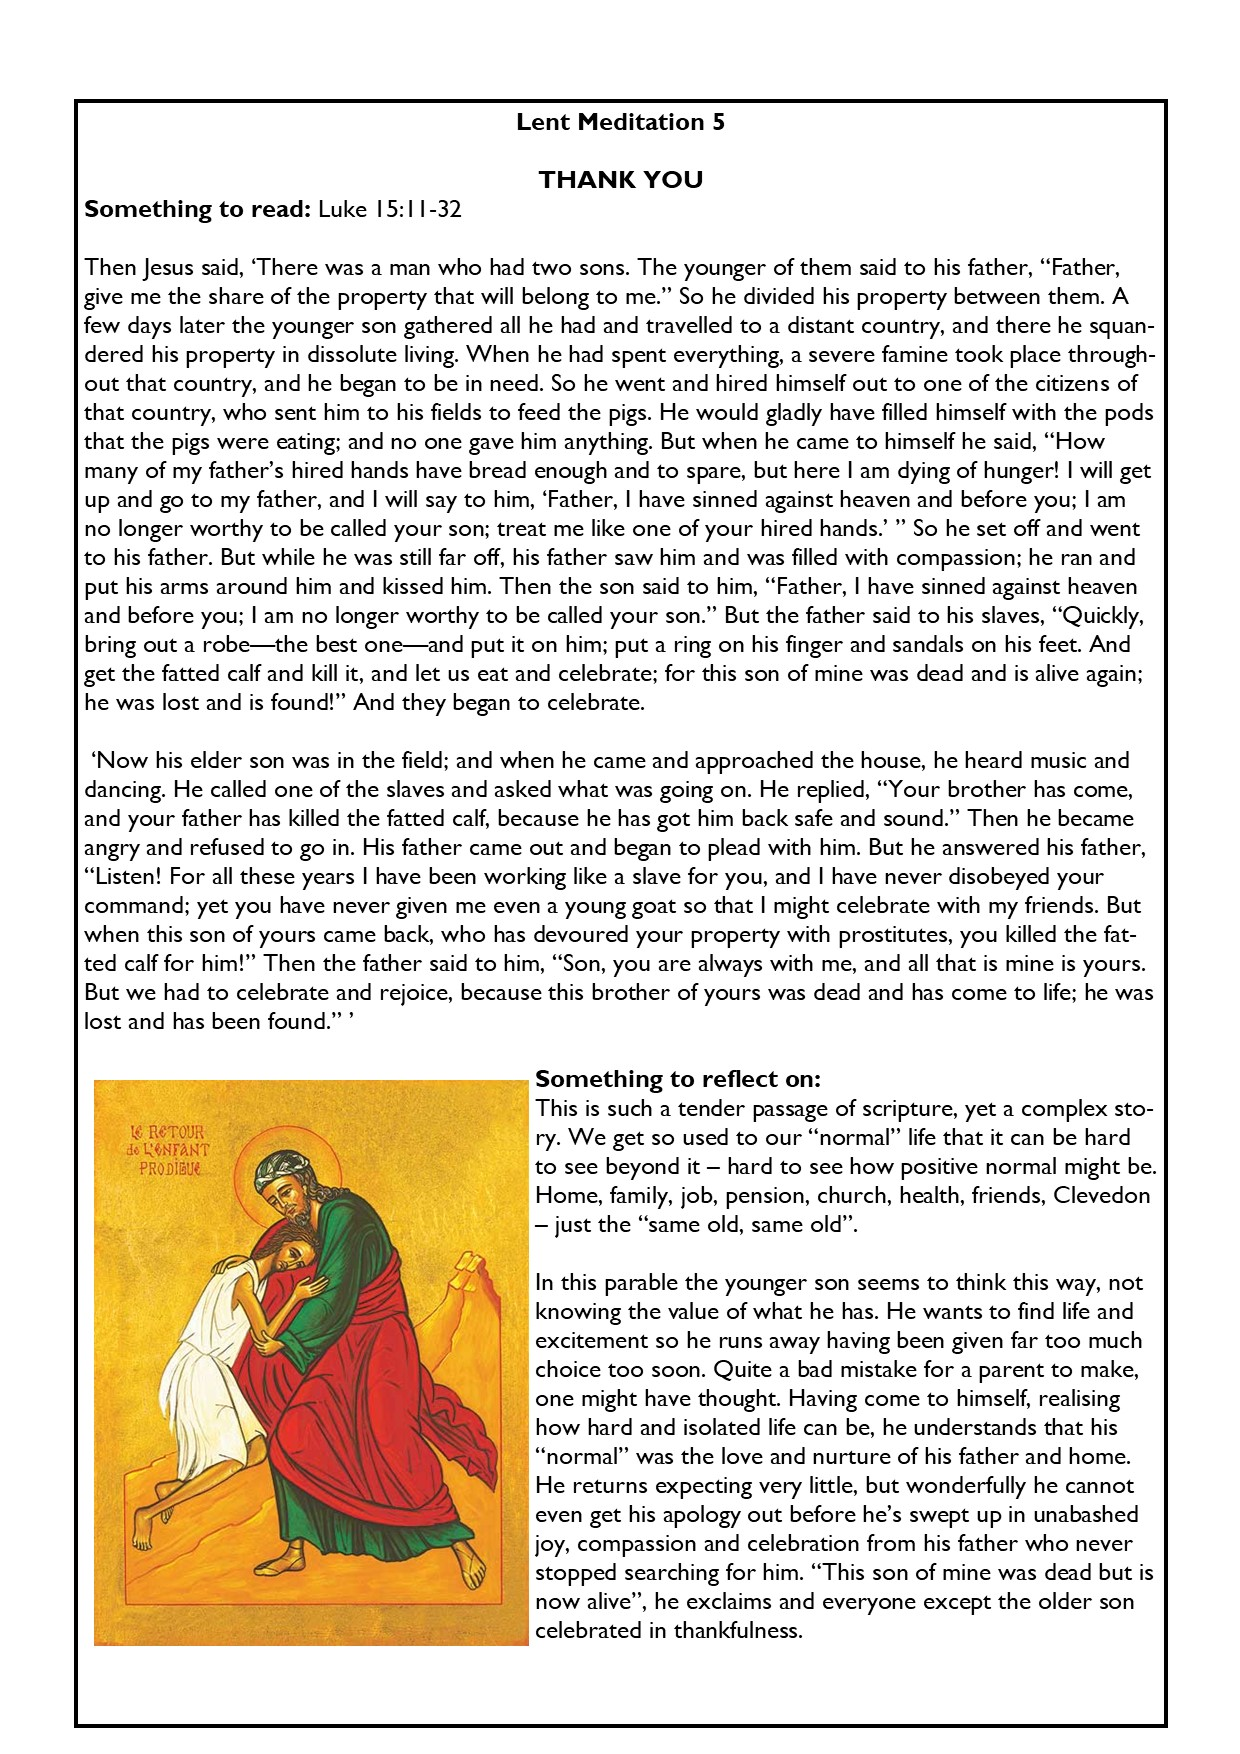 Lent 5 page 1 in graphic.jpg